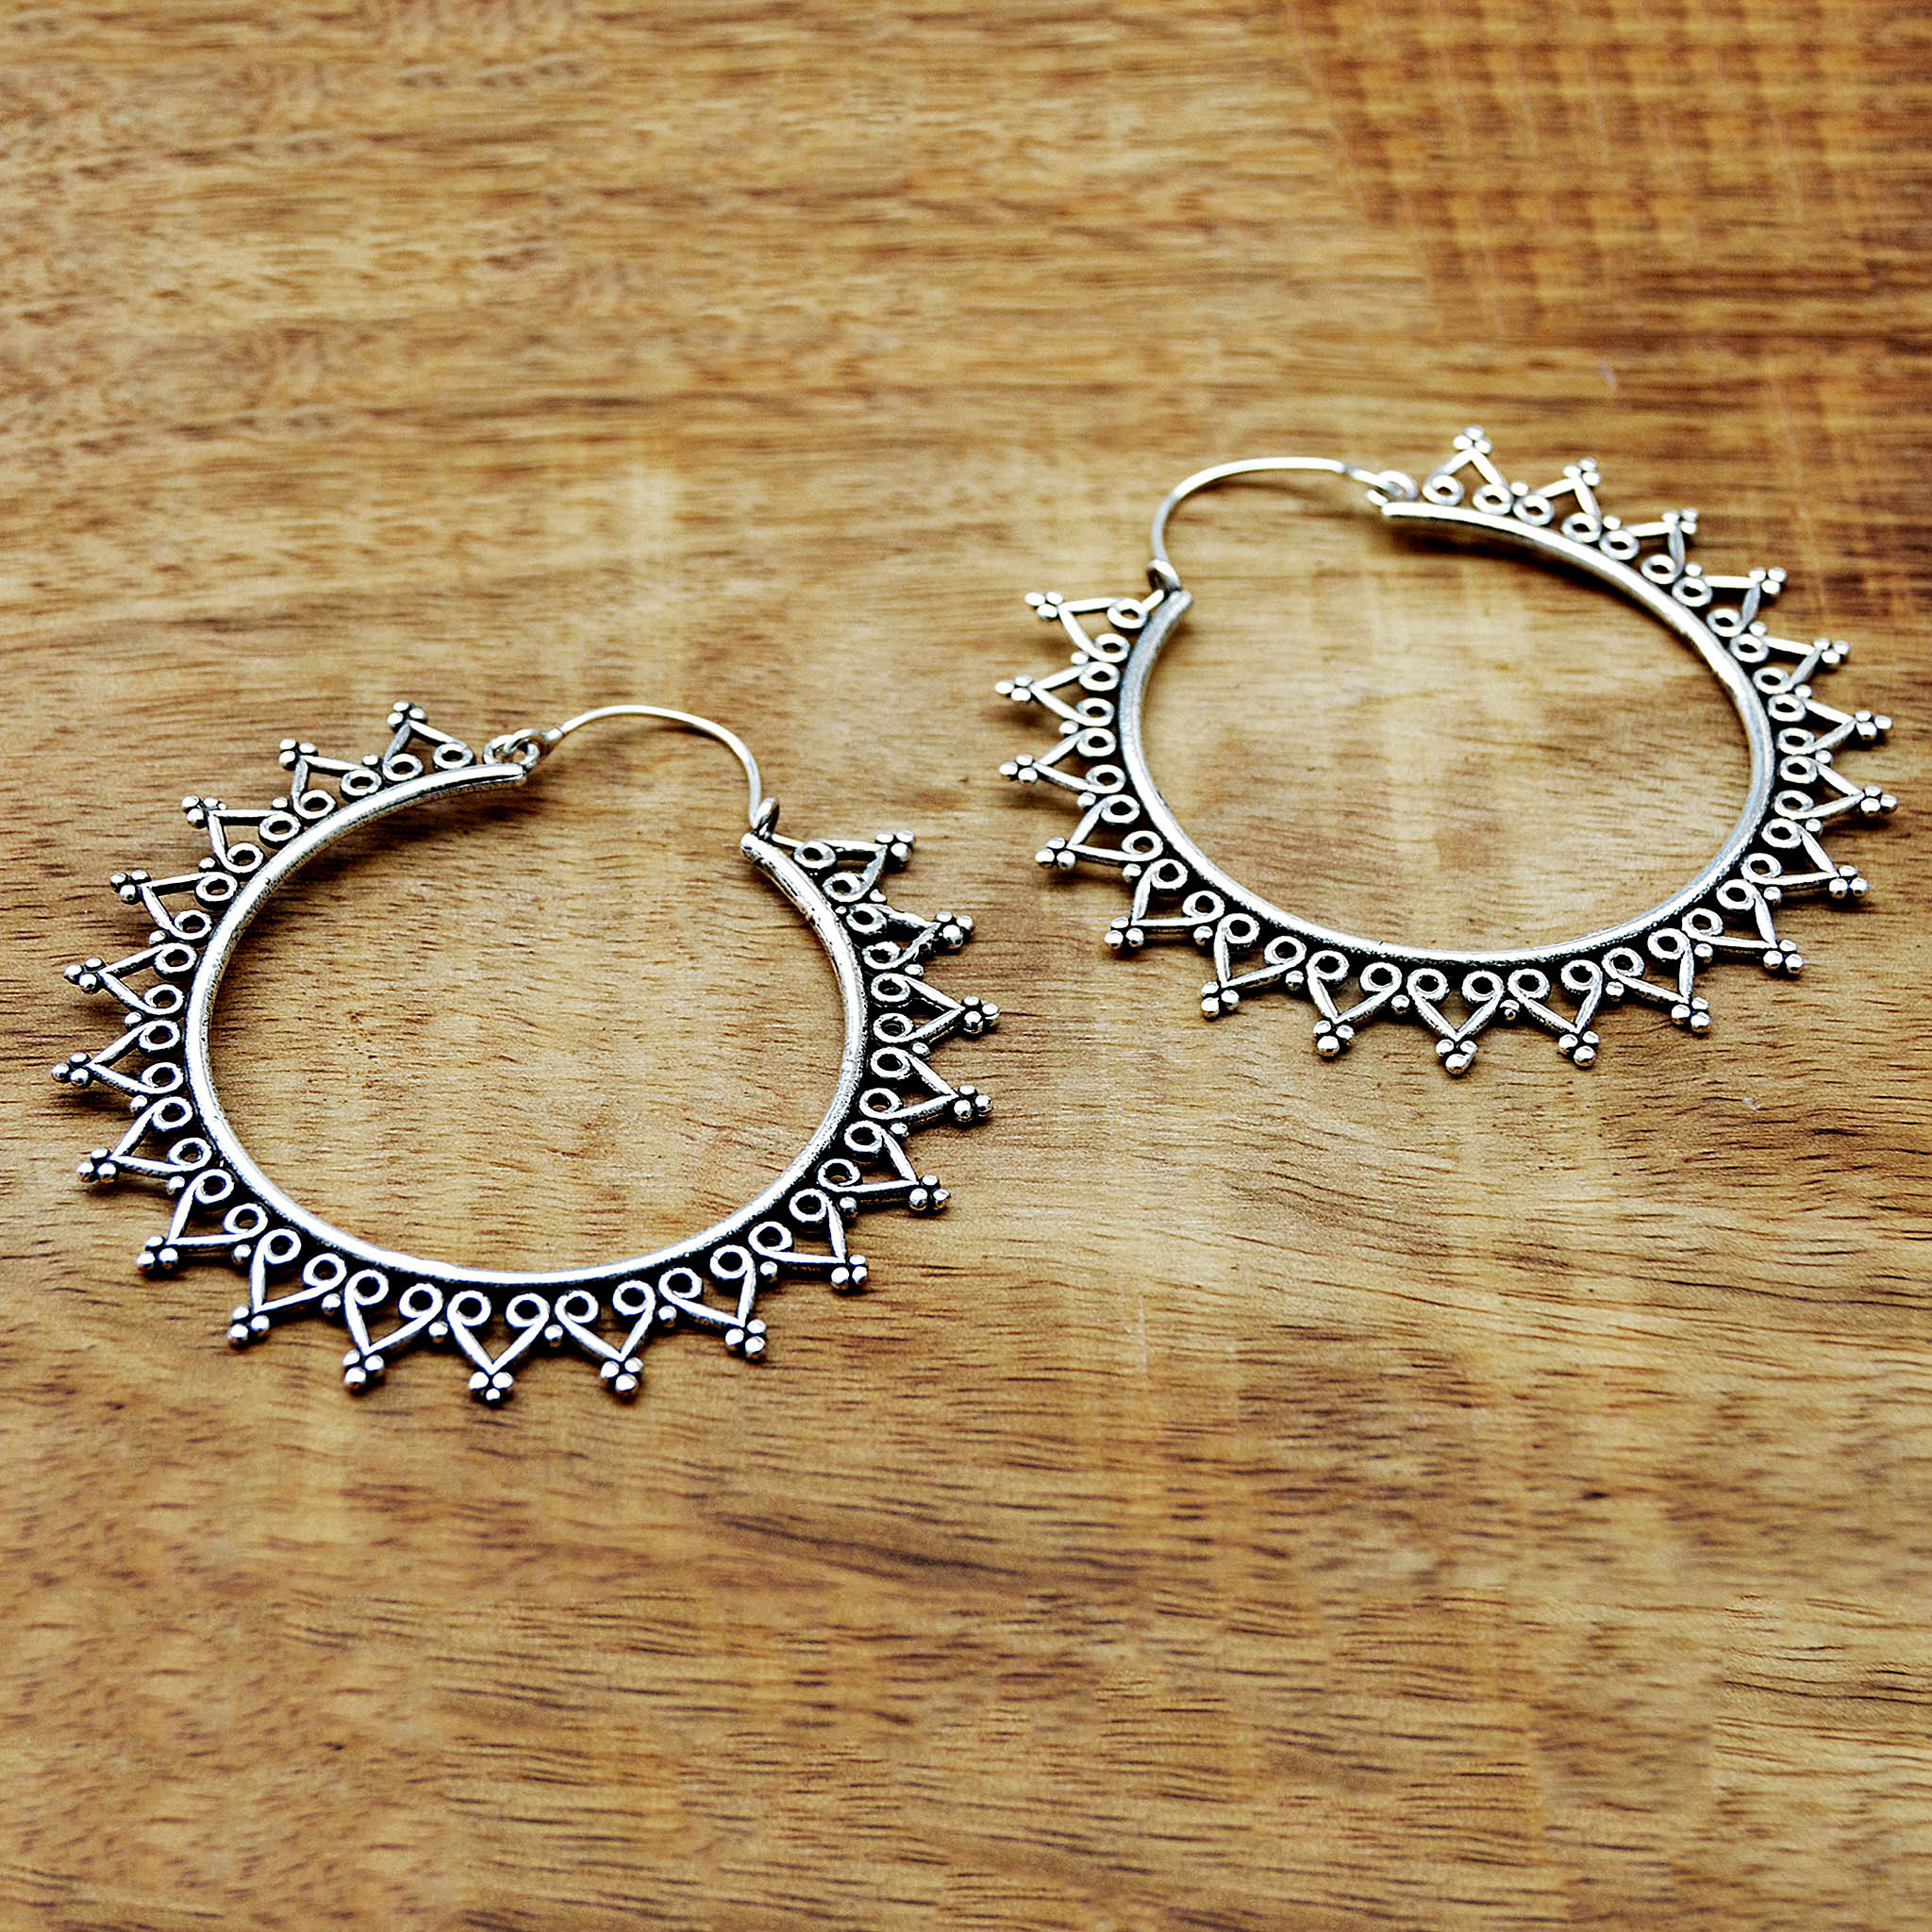 Ethnic silver hoop earrings